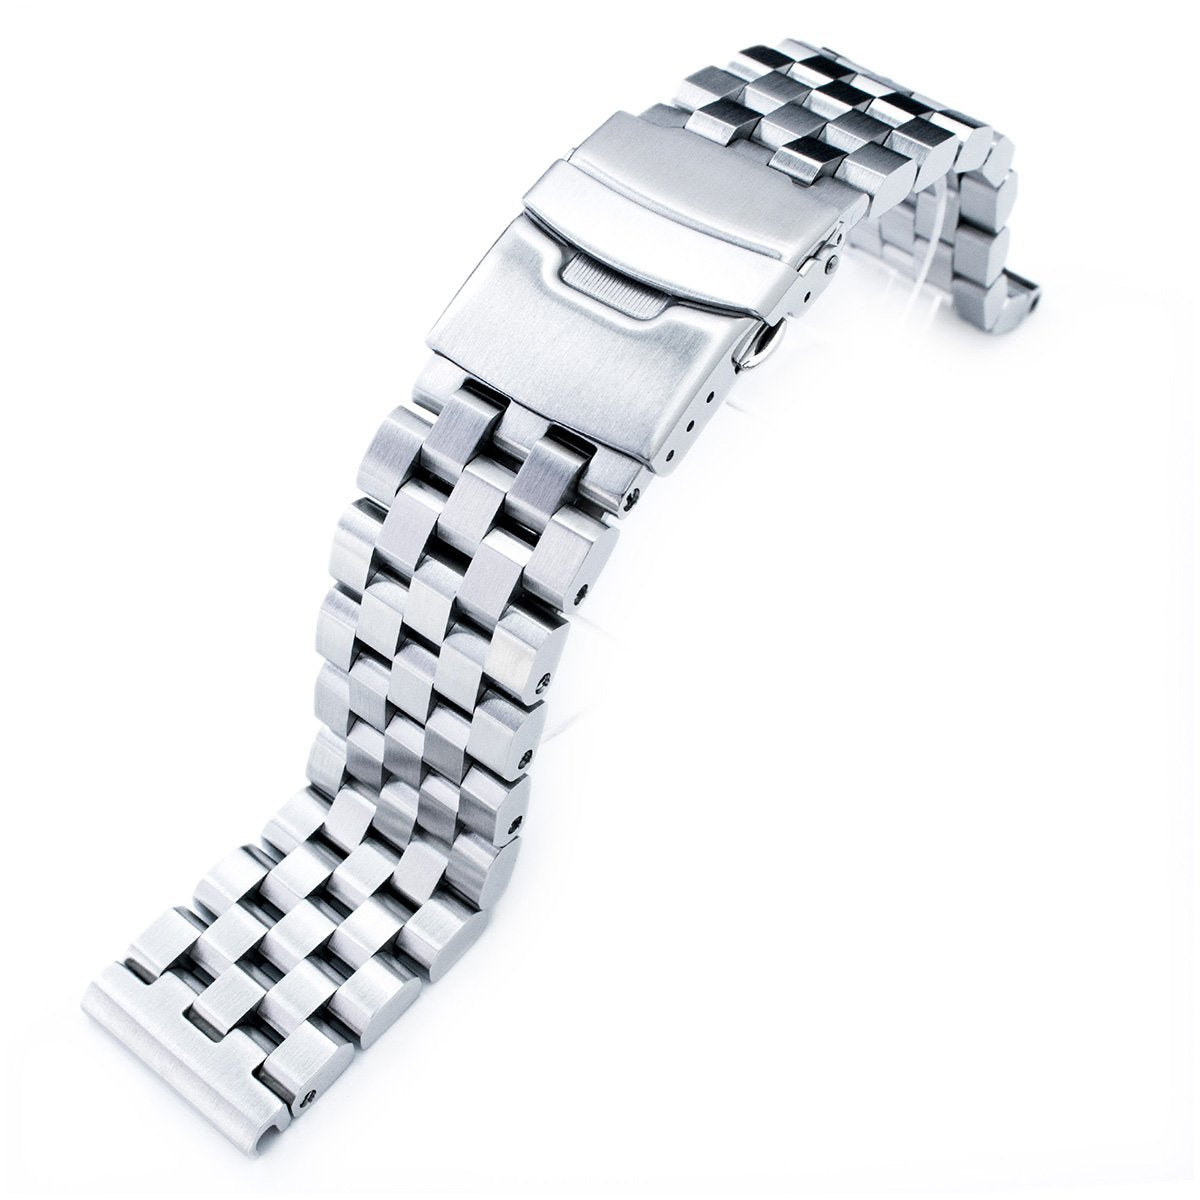 SUPER Engineer Type II Solid Stainless Steel Straight End Watch Band-Push Button Strapcode Watch Bands